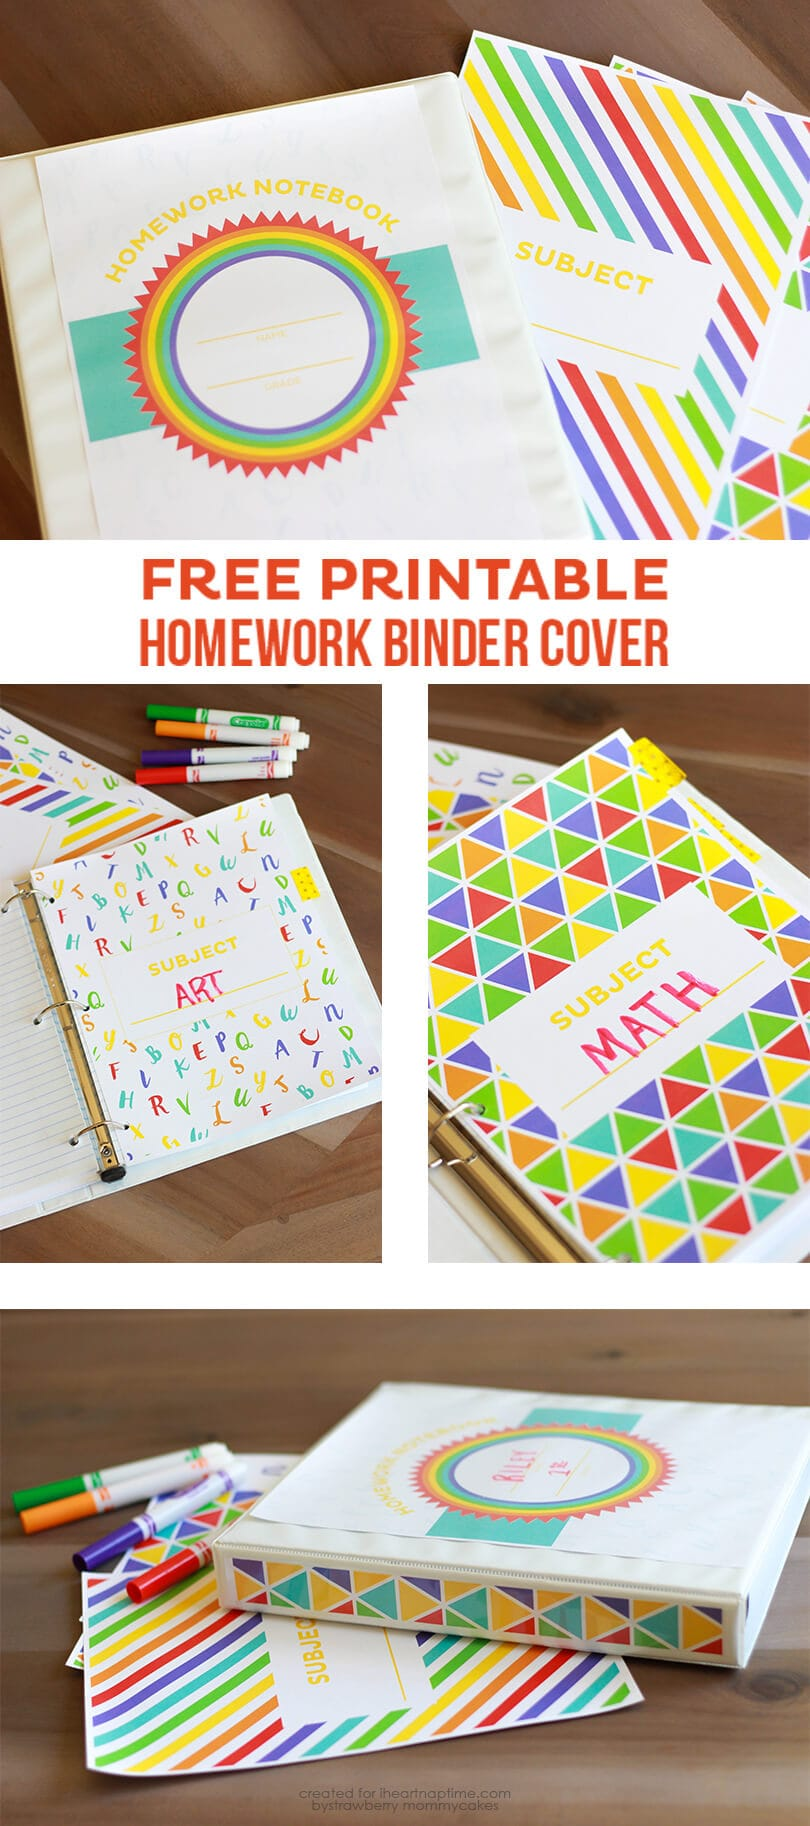 Keep your kids' homework organized with this FREE Printable Homework Binder Cover on iheartnaptime.com